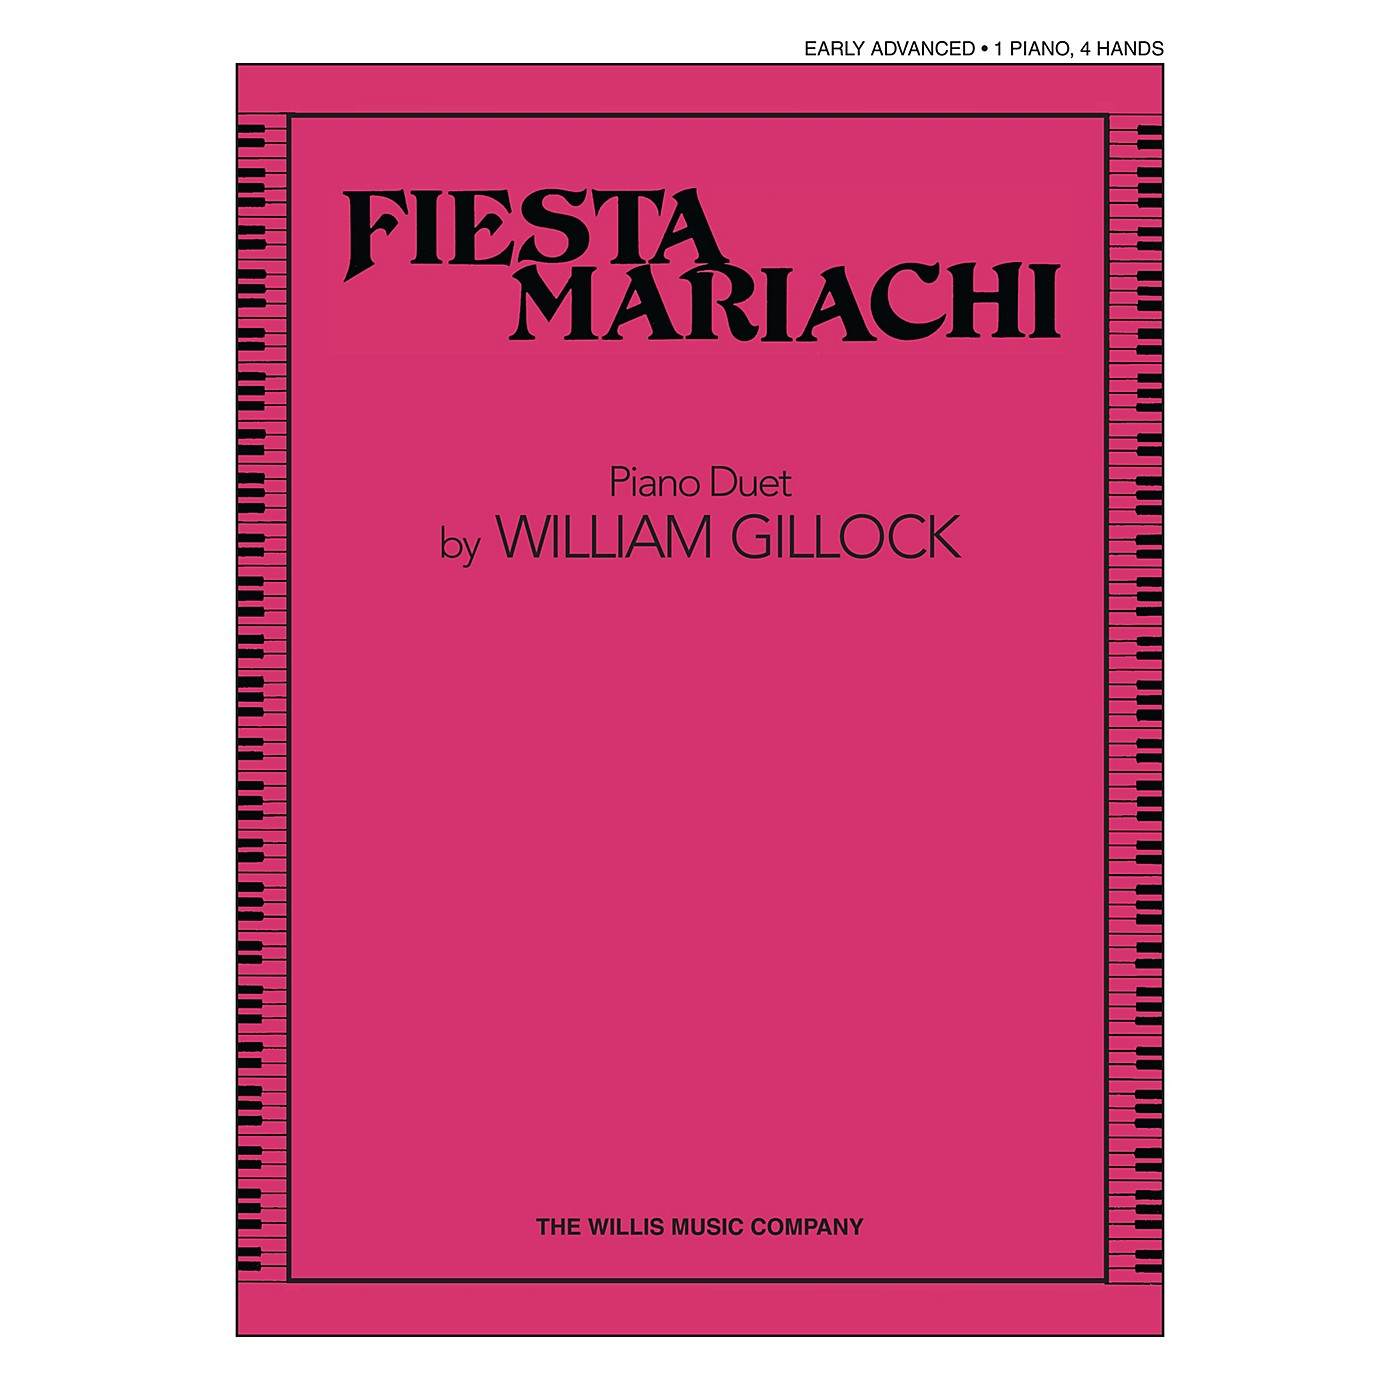 Willis Music Fiesta Mariachi (1 Piano, 4 Hands/Early Advanced Level) Willis Series Book by William Gillock thumbnail